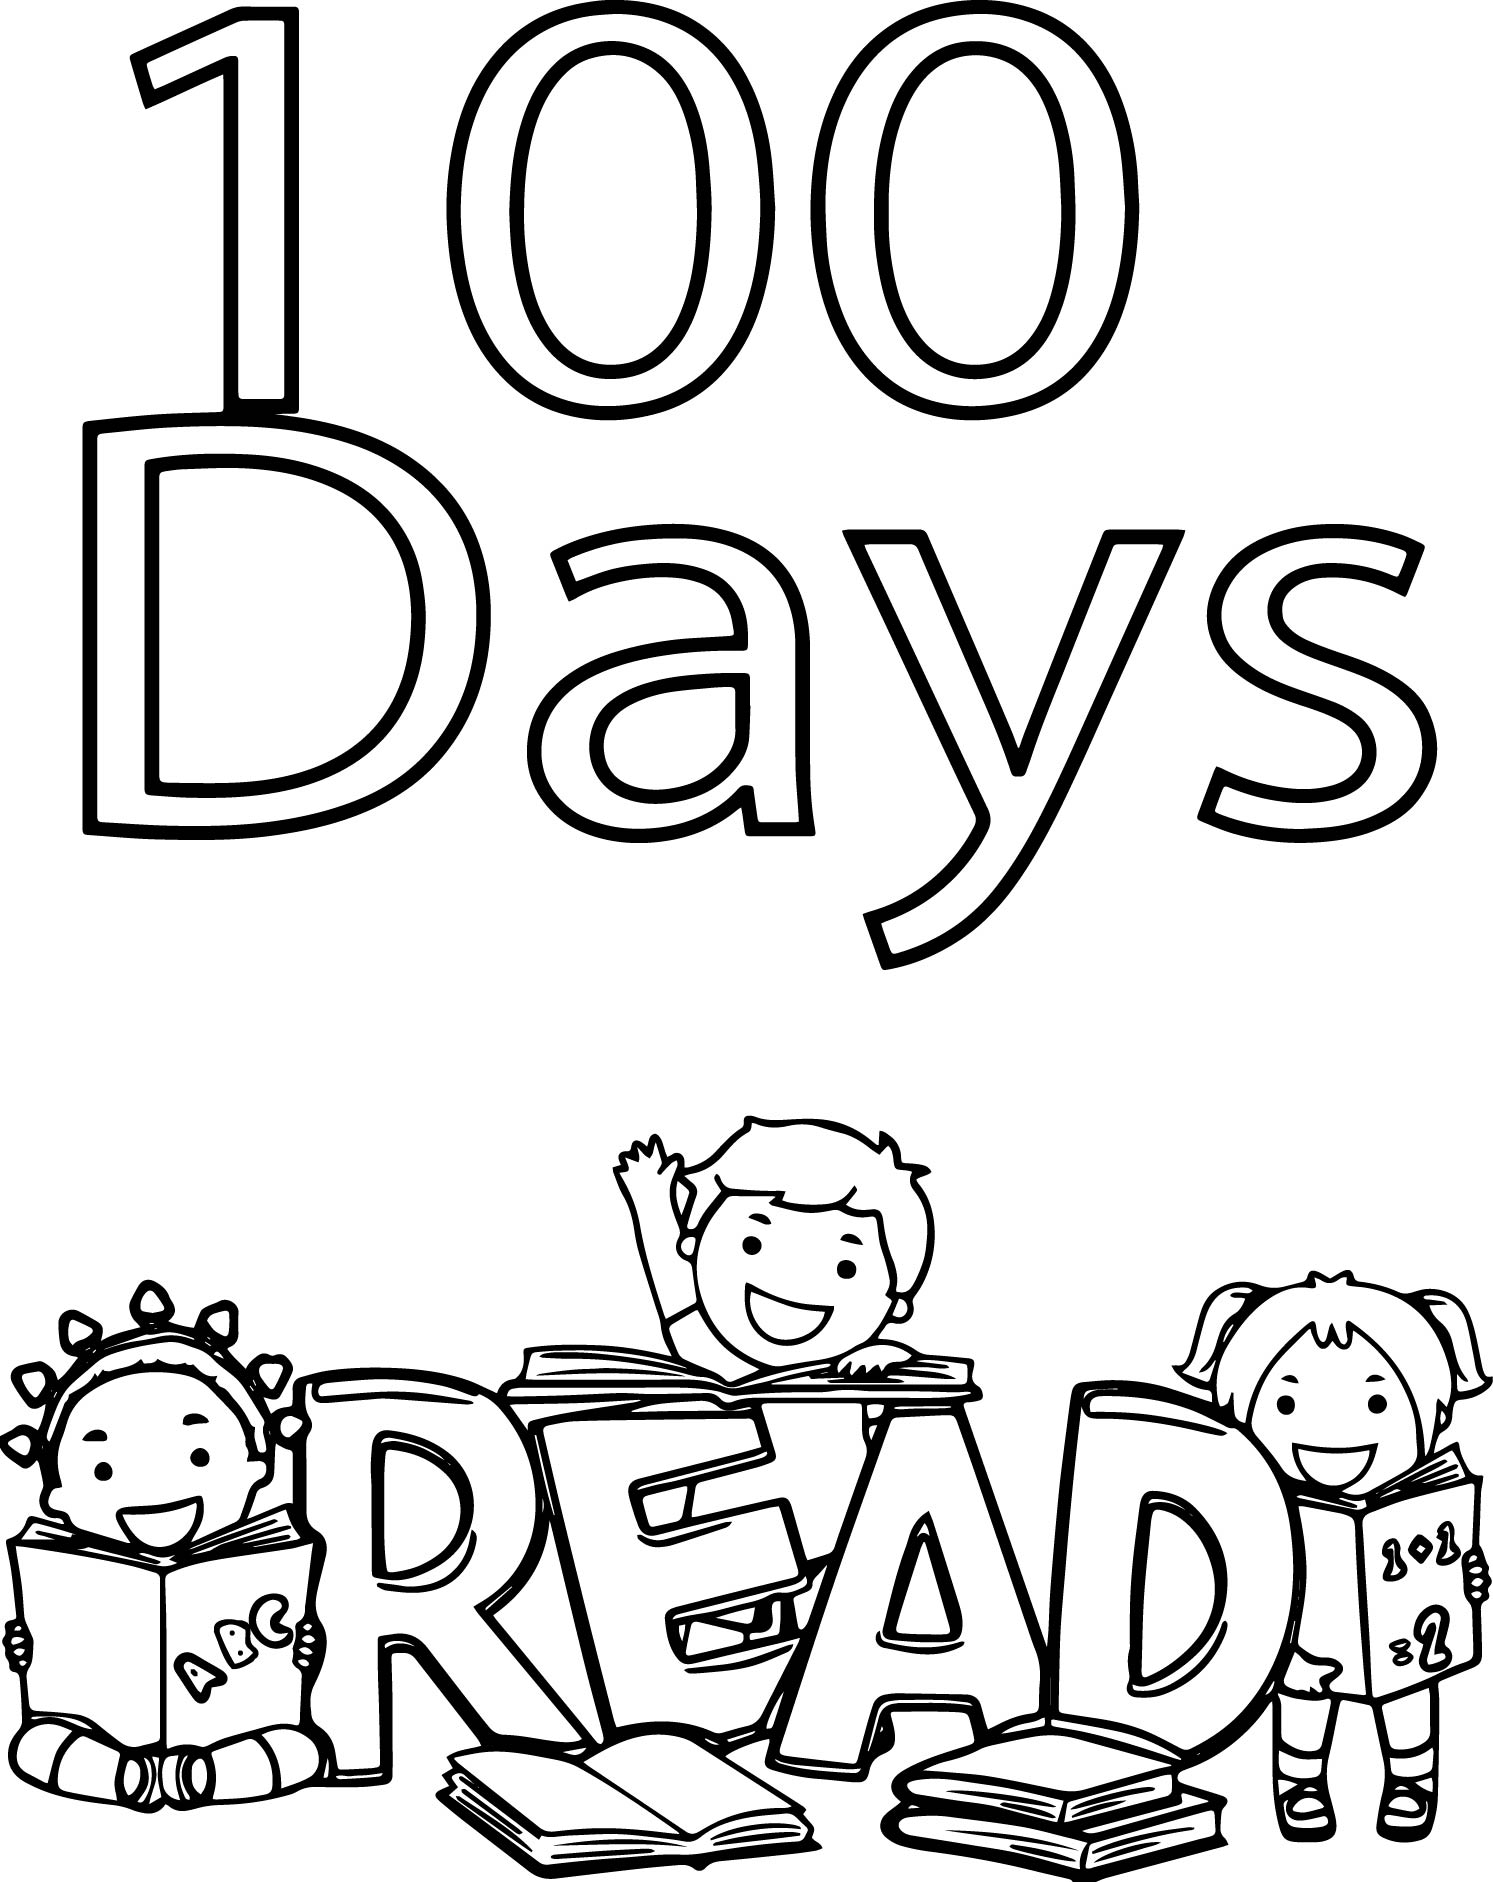 Happy 100th Day Of School Coloring Page